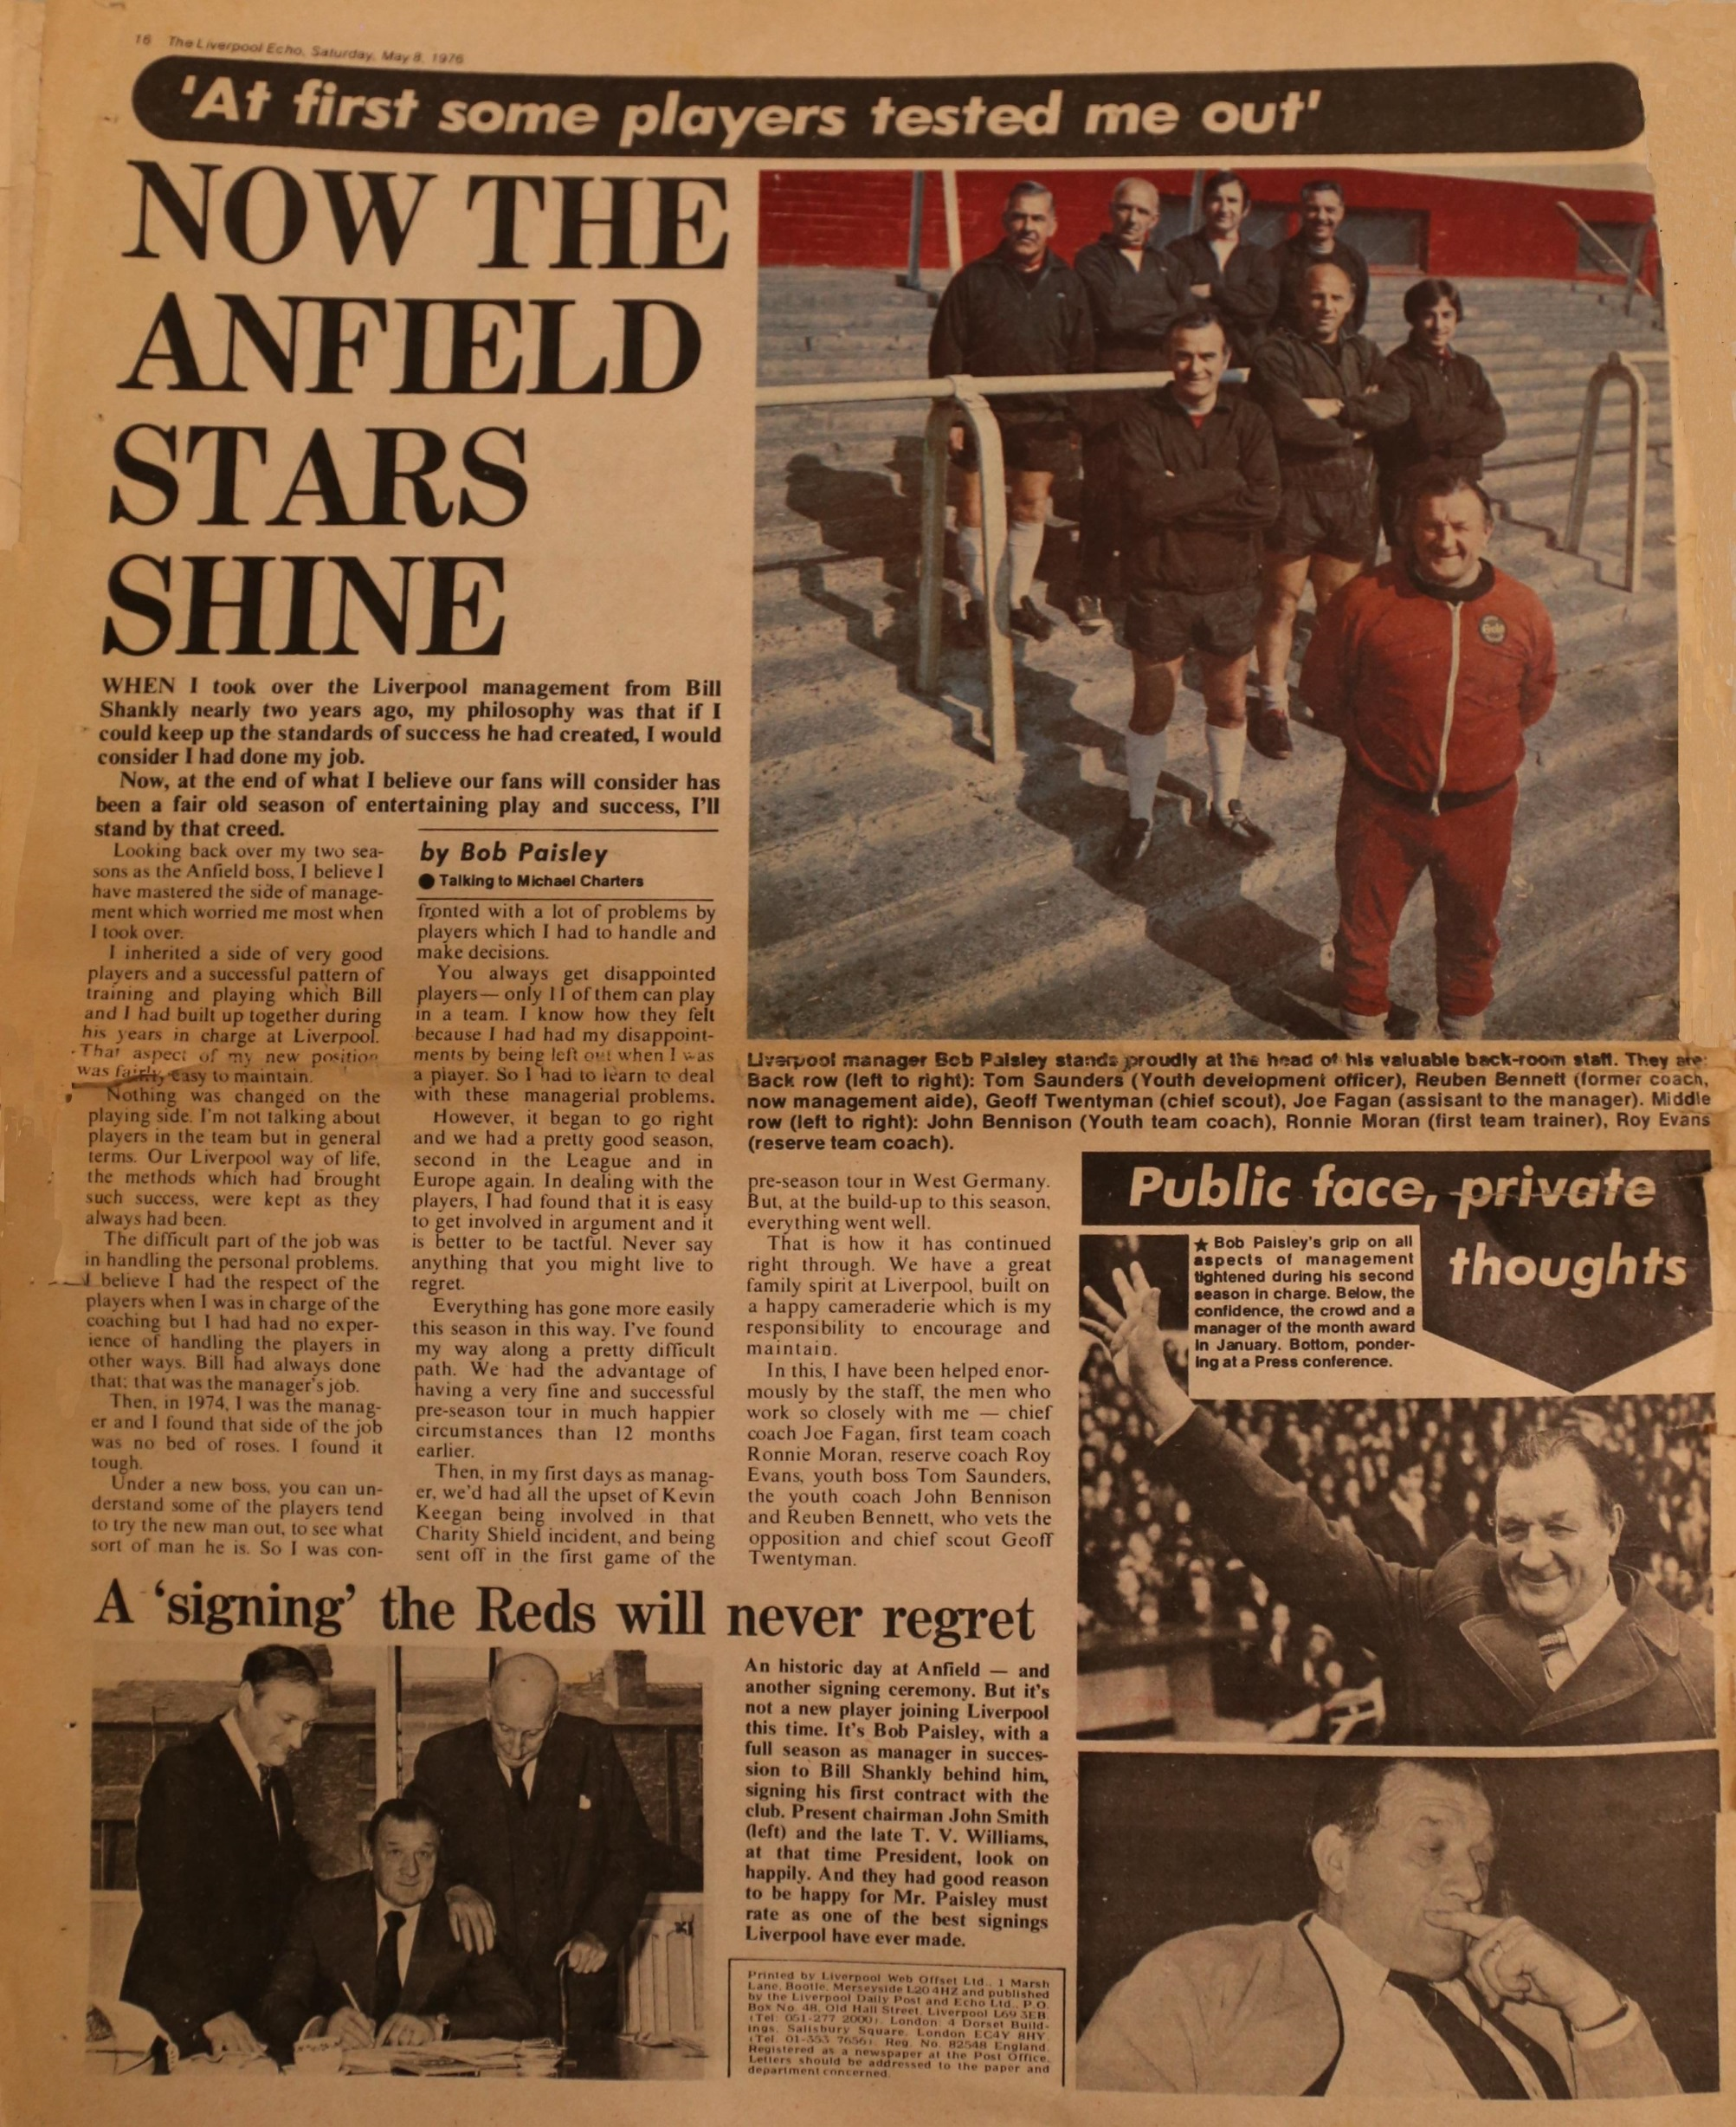 Now the Anfield stars shine - 5 May 1976